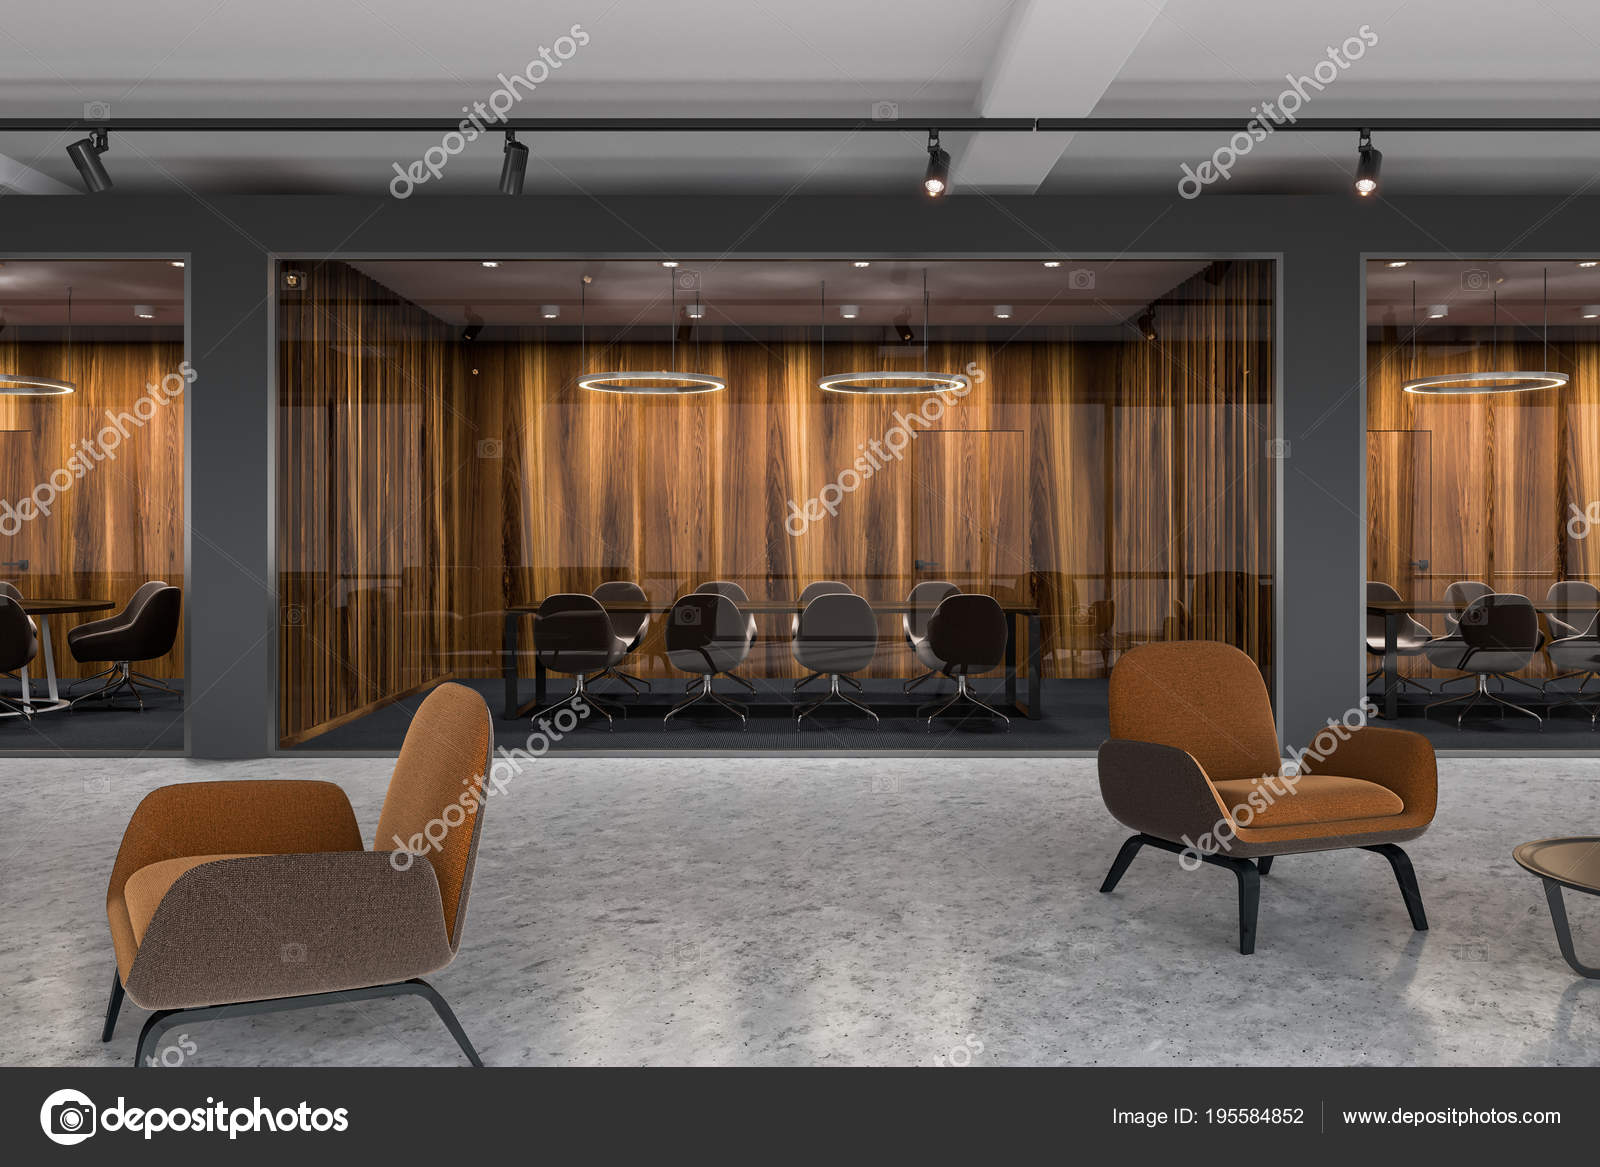 Brown Armchairs Lobby Meeting Room Stock Photo C Denisismagilov 195584852